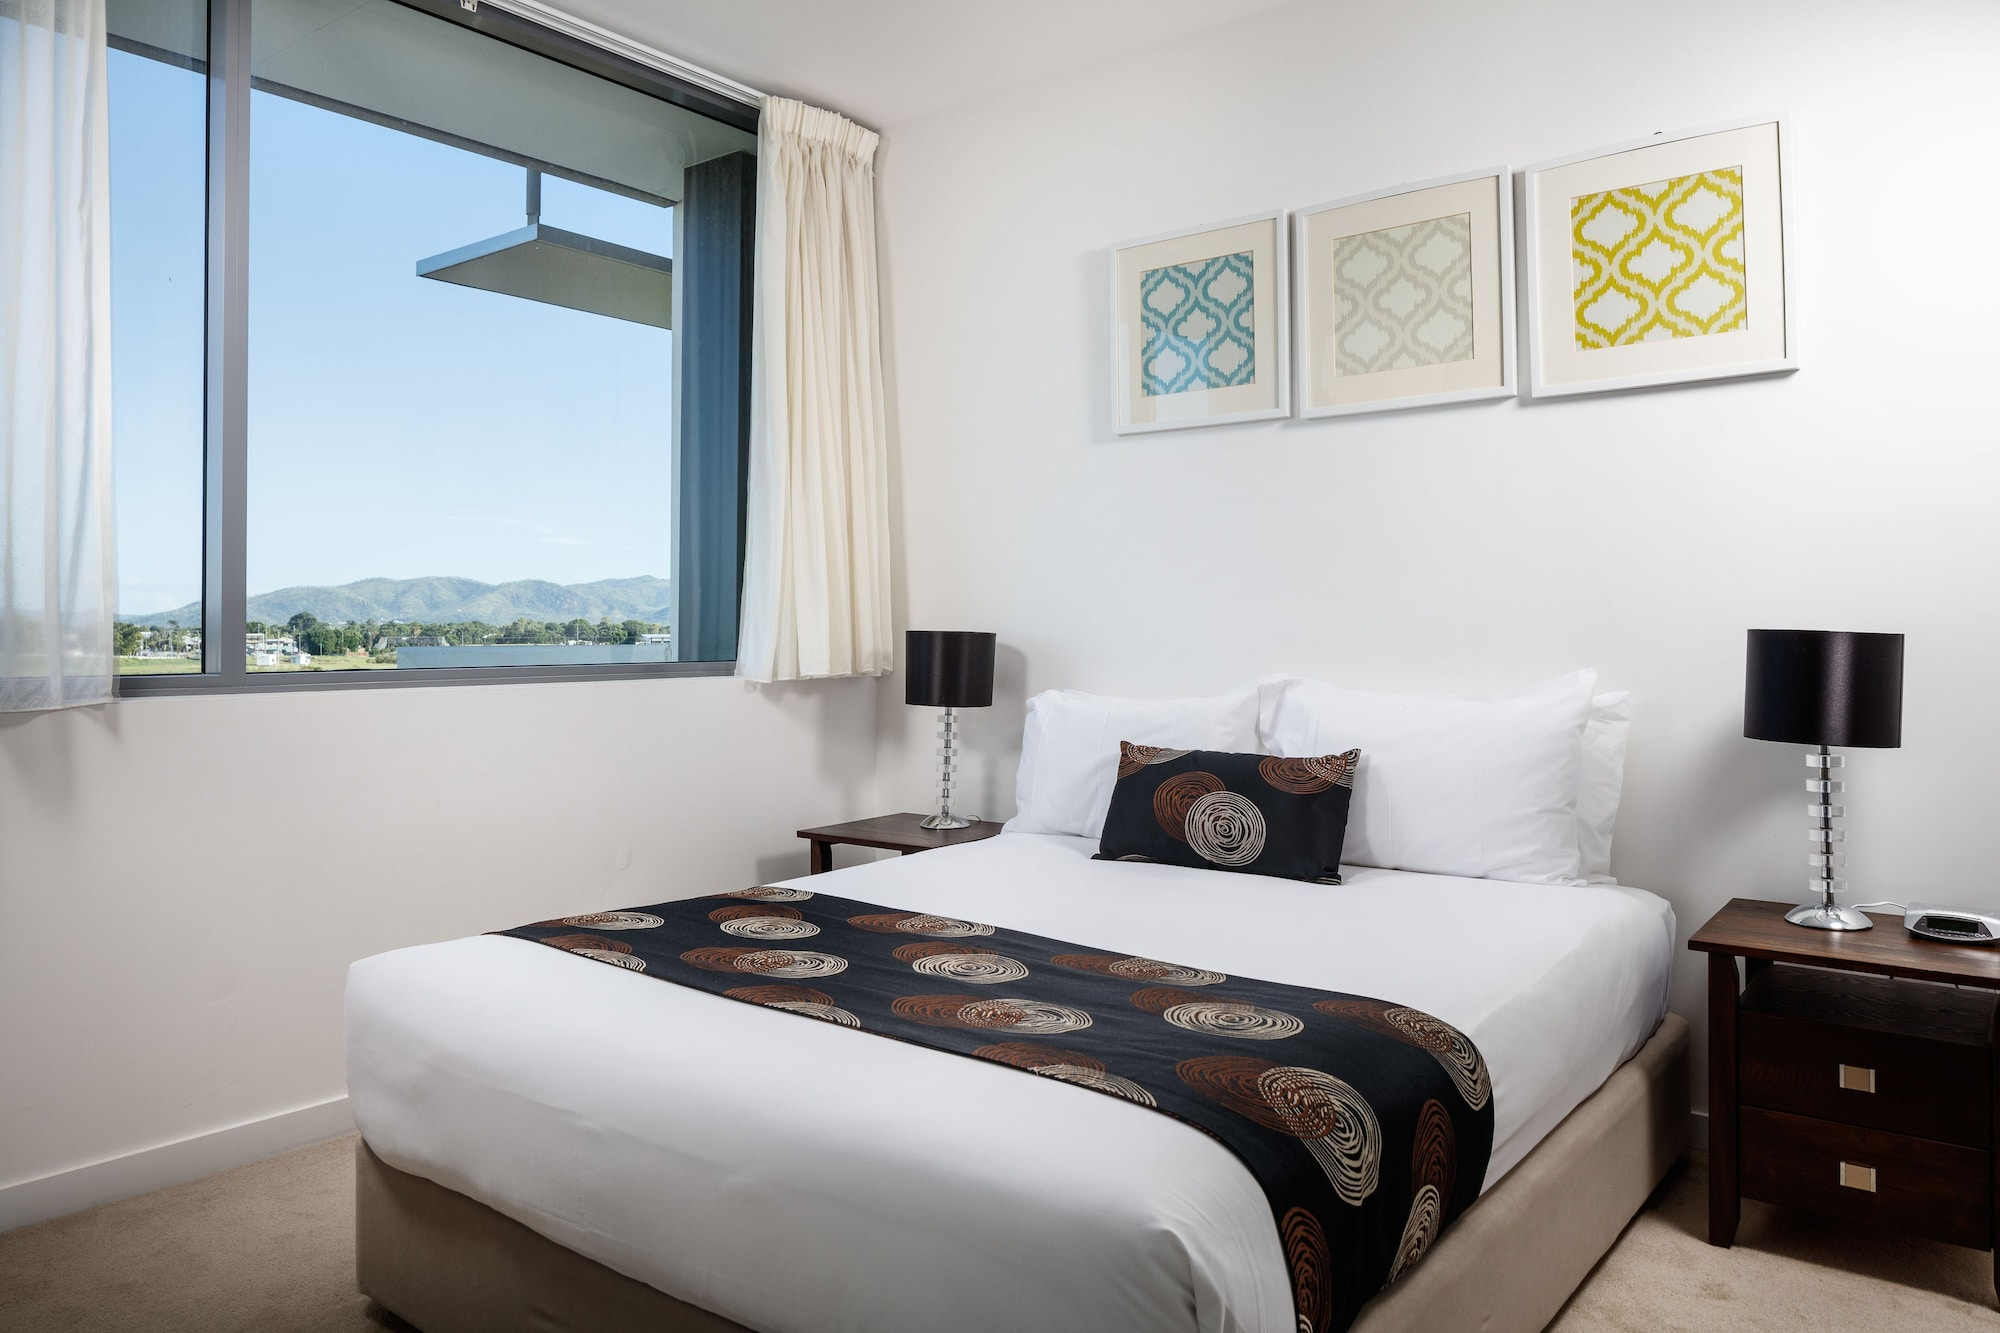 Direct Hotels – Islington at Central, City